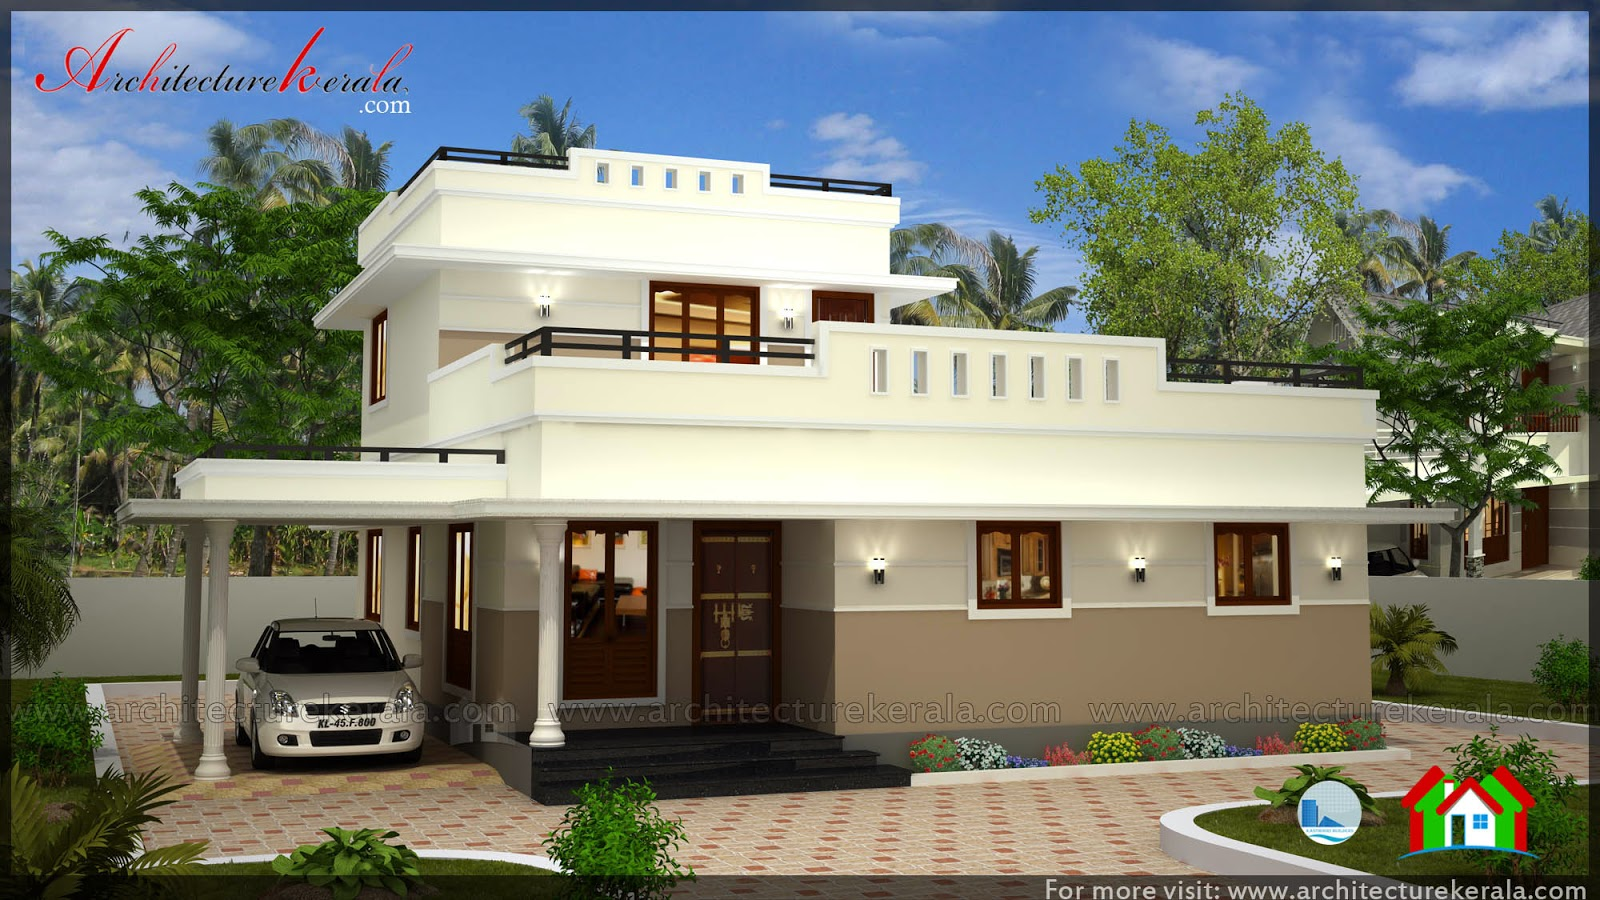 Low cost 3 bedroom kerala house plan with elevation free for Kerala style 2 bedroom house plans